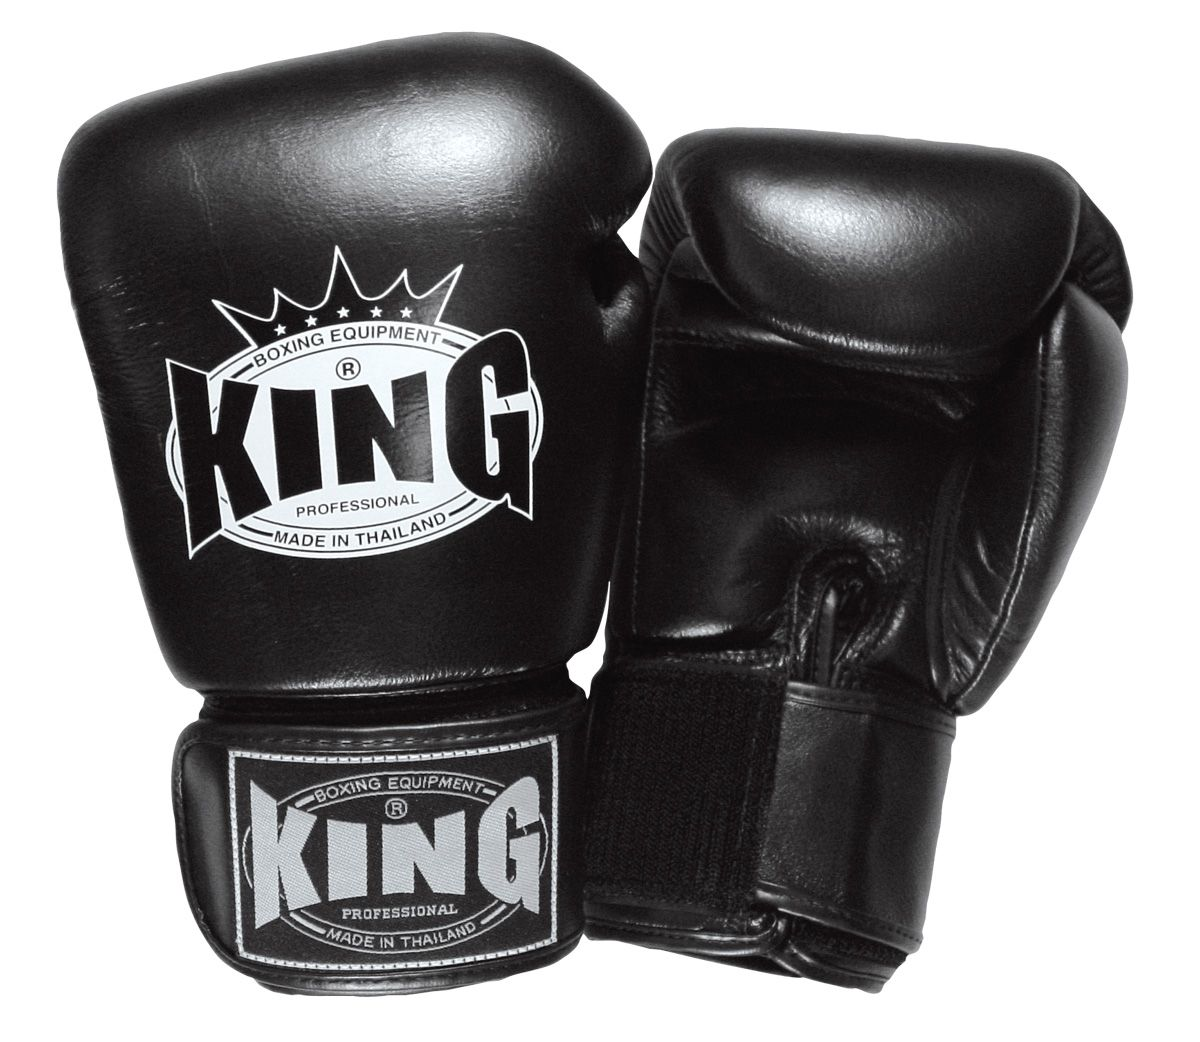 Sport Gloves Vice Opskins: Boxing Gloves - Google Search